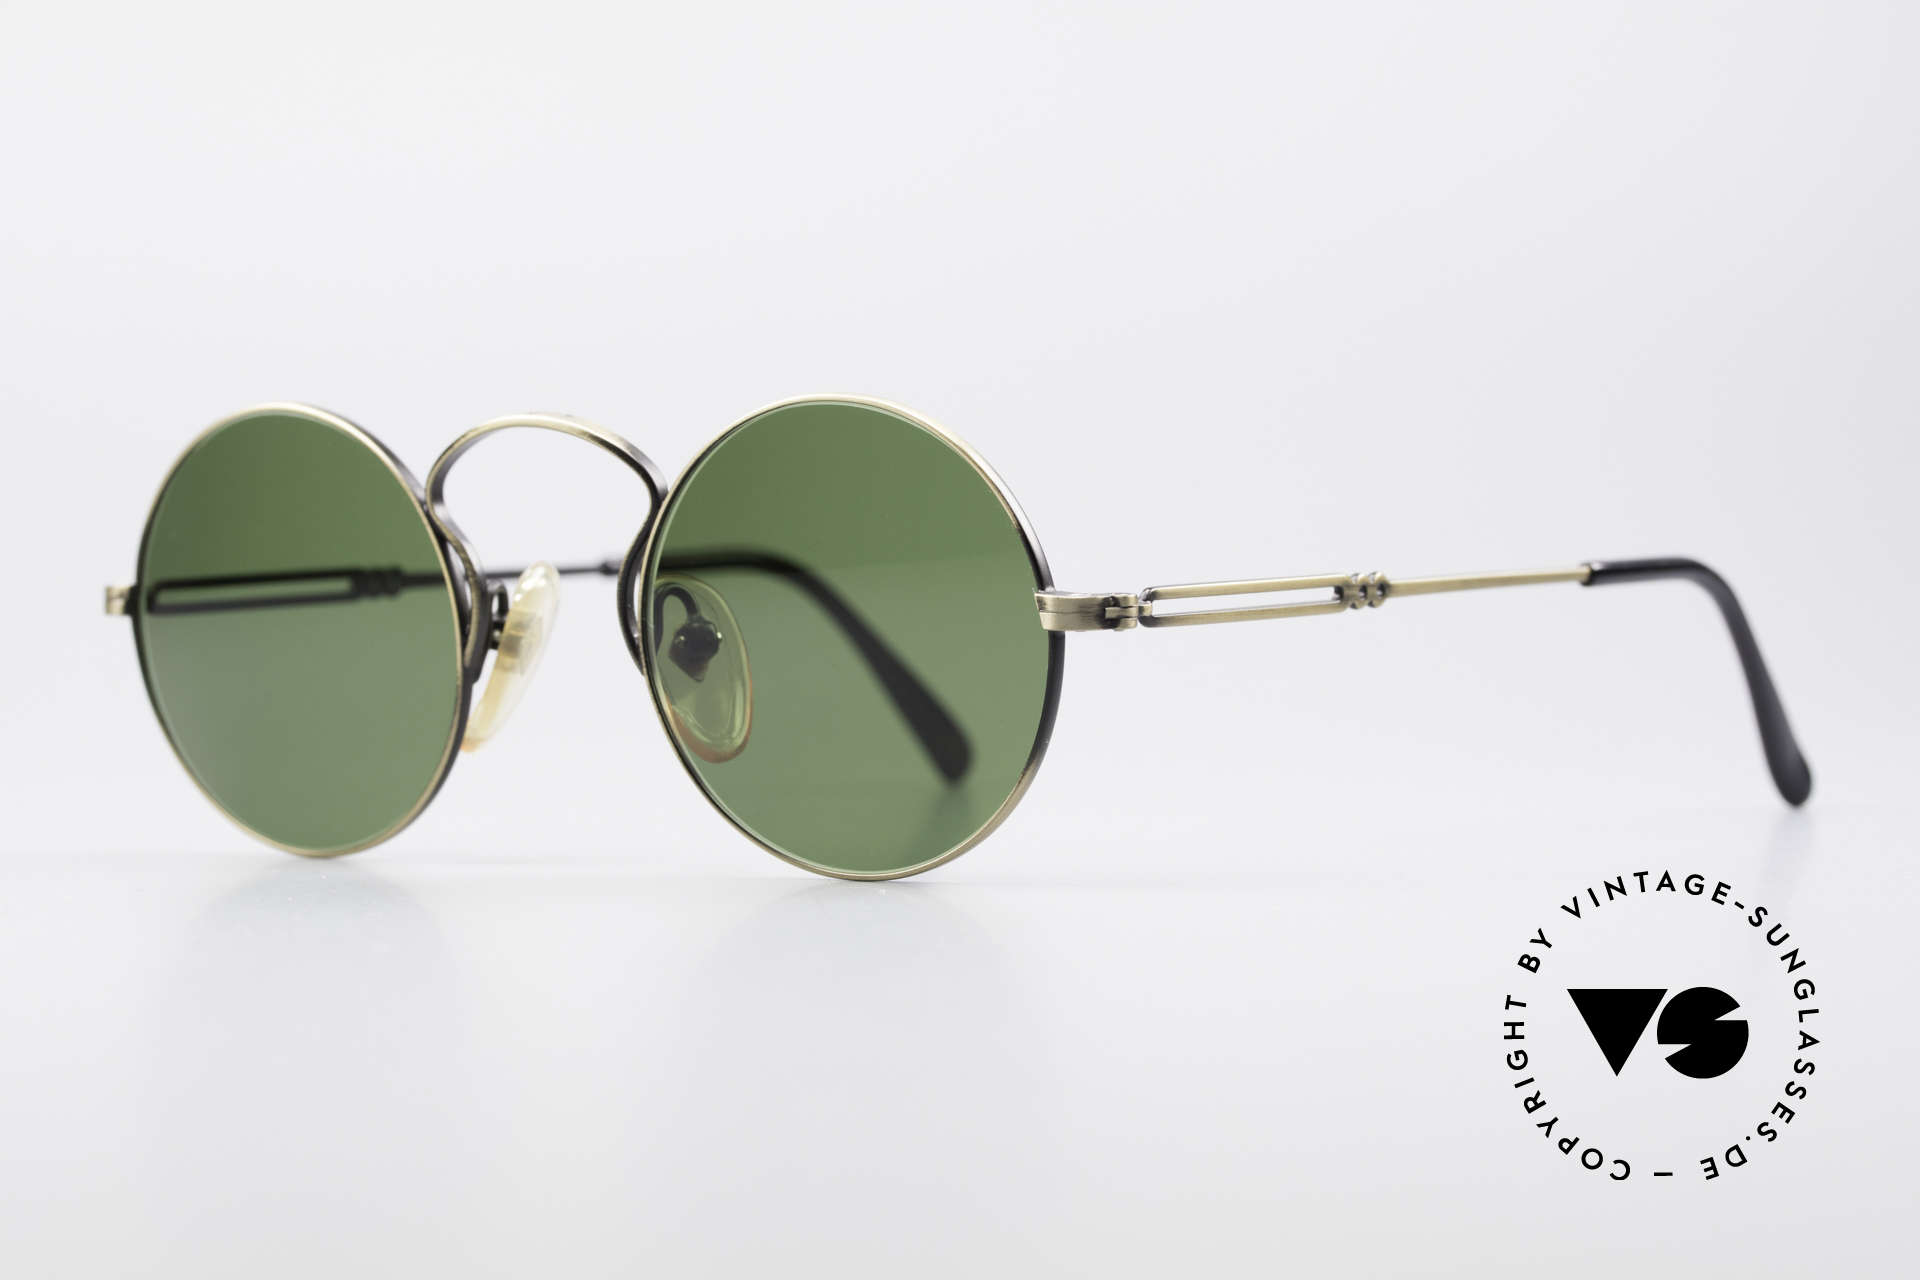 """Jean Paul Gaultier 55-0172 90's Designer Sunglasses, high-class finish (brushed metal in """"antique gold""""), Made for Men and Women"""